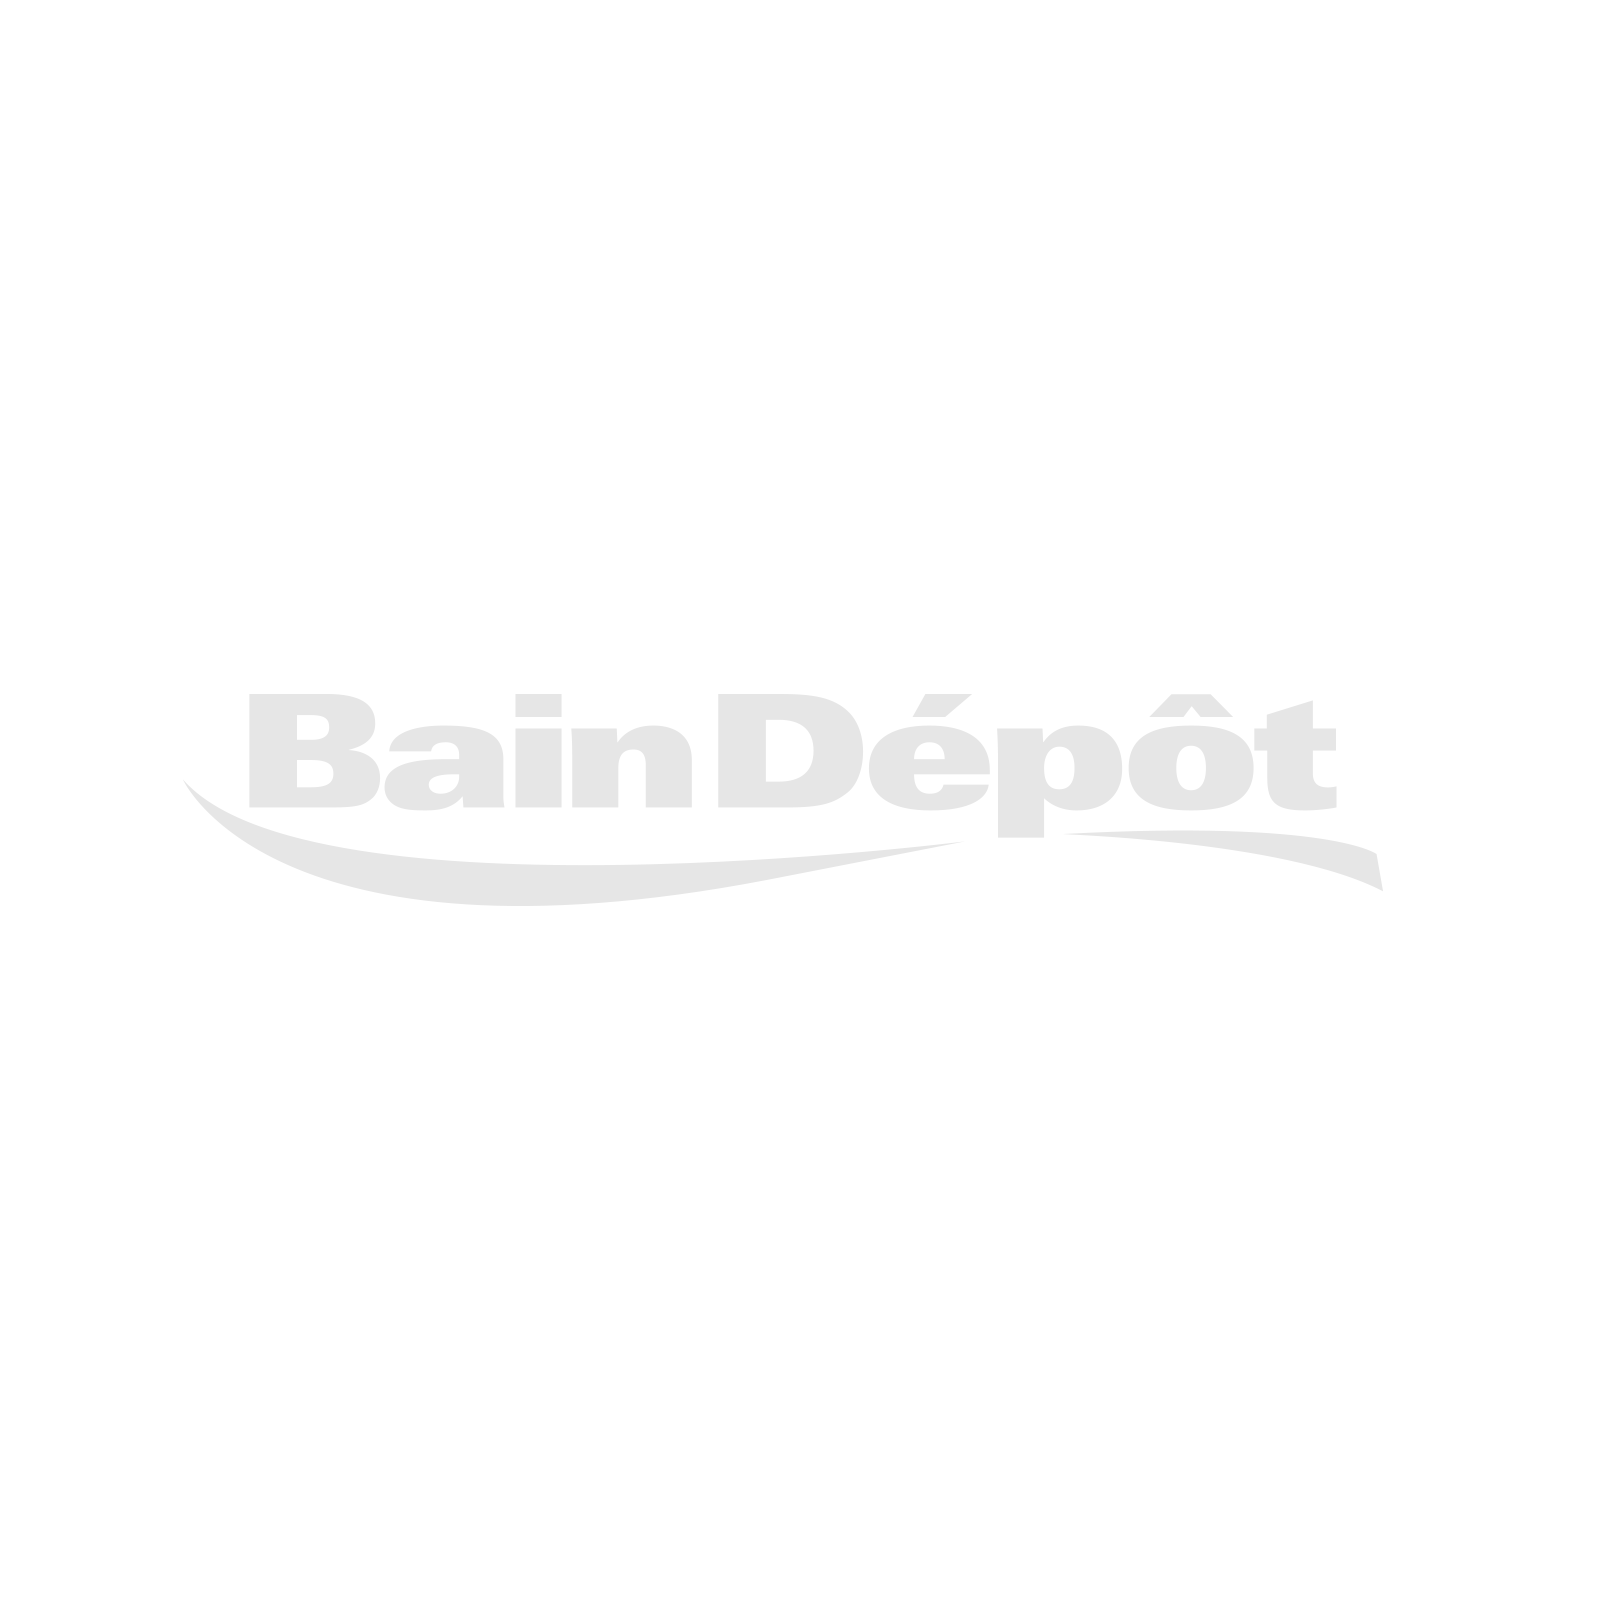 "48"" x 32"" Shower kit with opening on 32"" side and right side corner base"